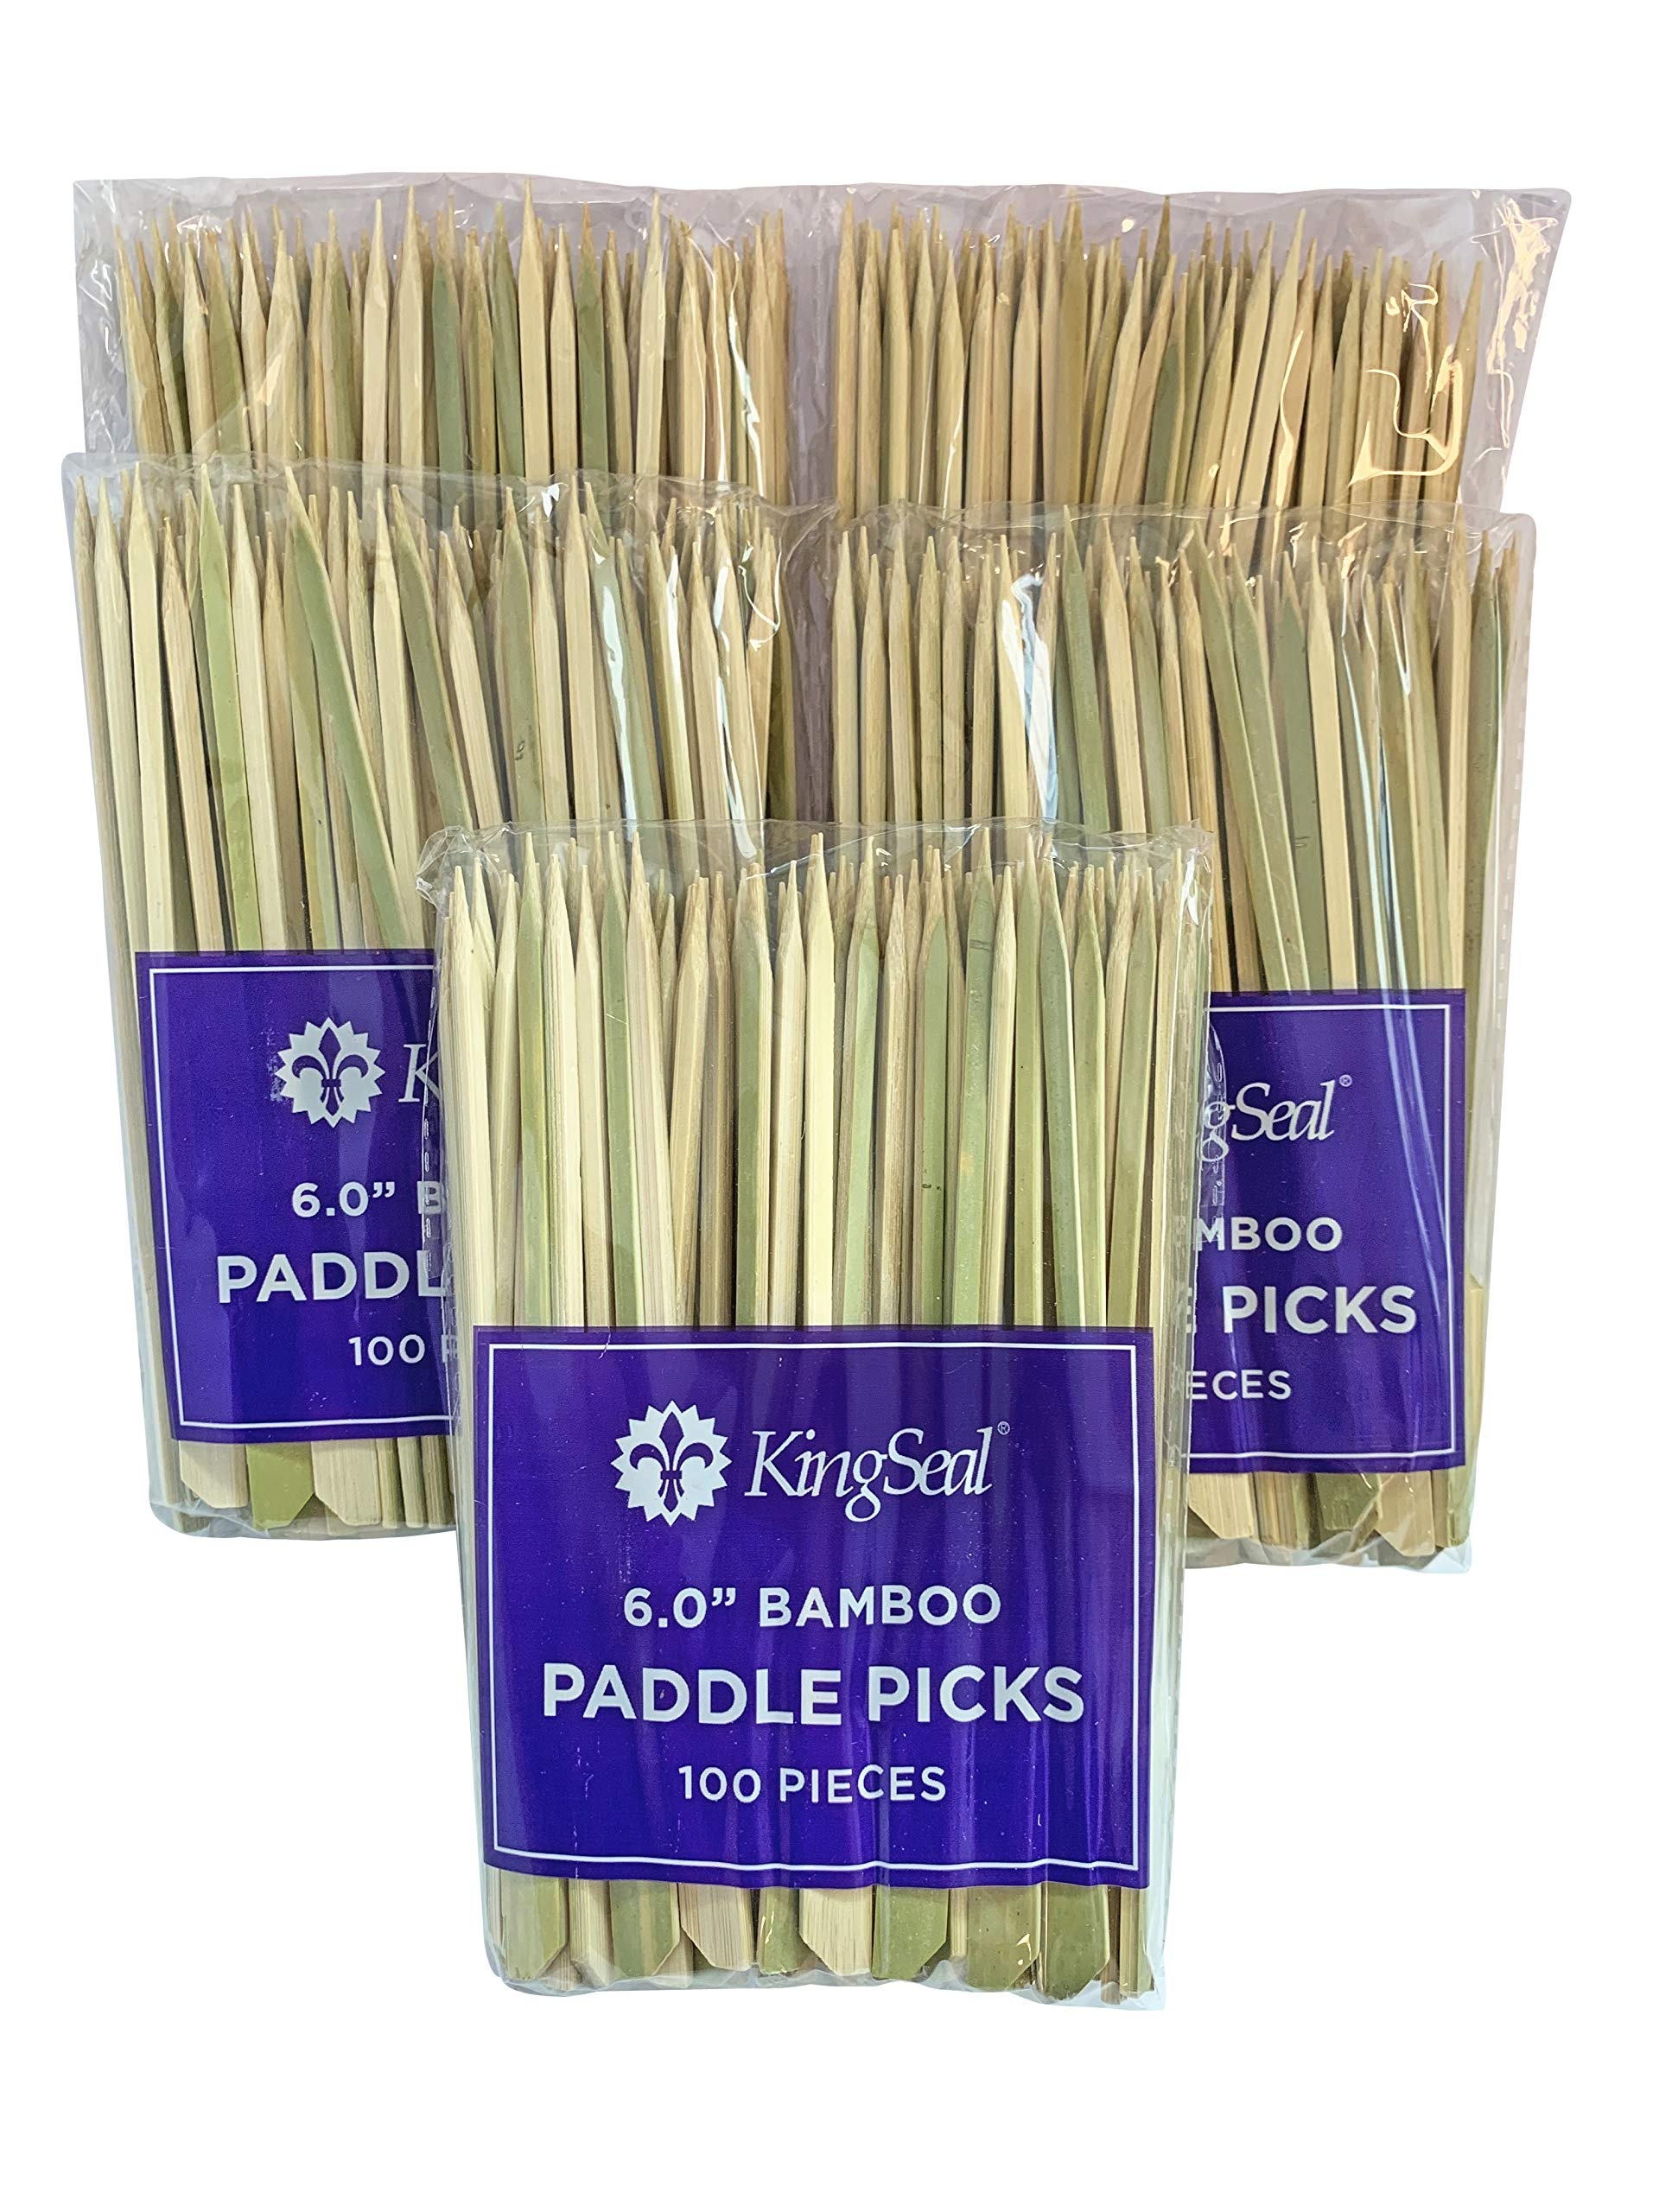 KingSeal Natural Green Bamboo Wood Paddle Picks, Skewers for Appetizers and Cocktails, 6.0 Inches - 10 Packs of 100 Per Pack by KingSeal